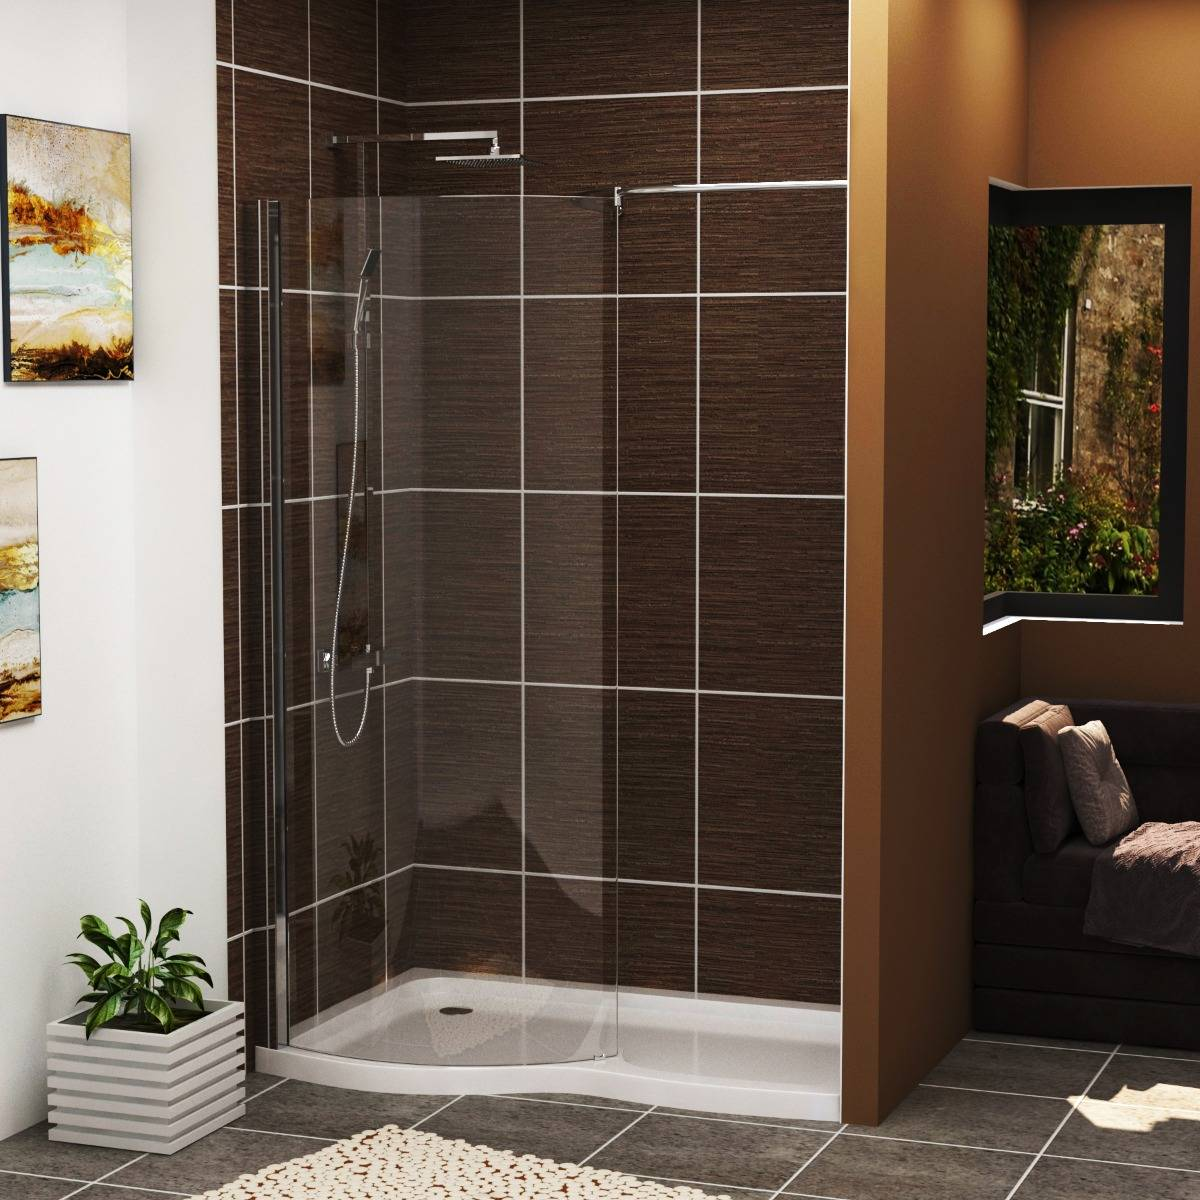 Royal Bathrooms Elegance Wet Room Shower Screen 8mm Easy Clean Glass with 1400 x 900mm Shower Tray Left Handed